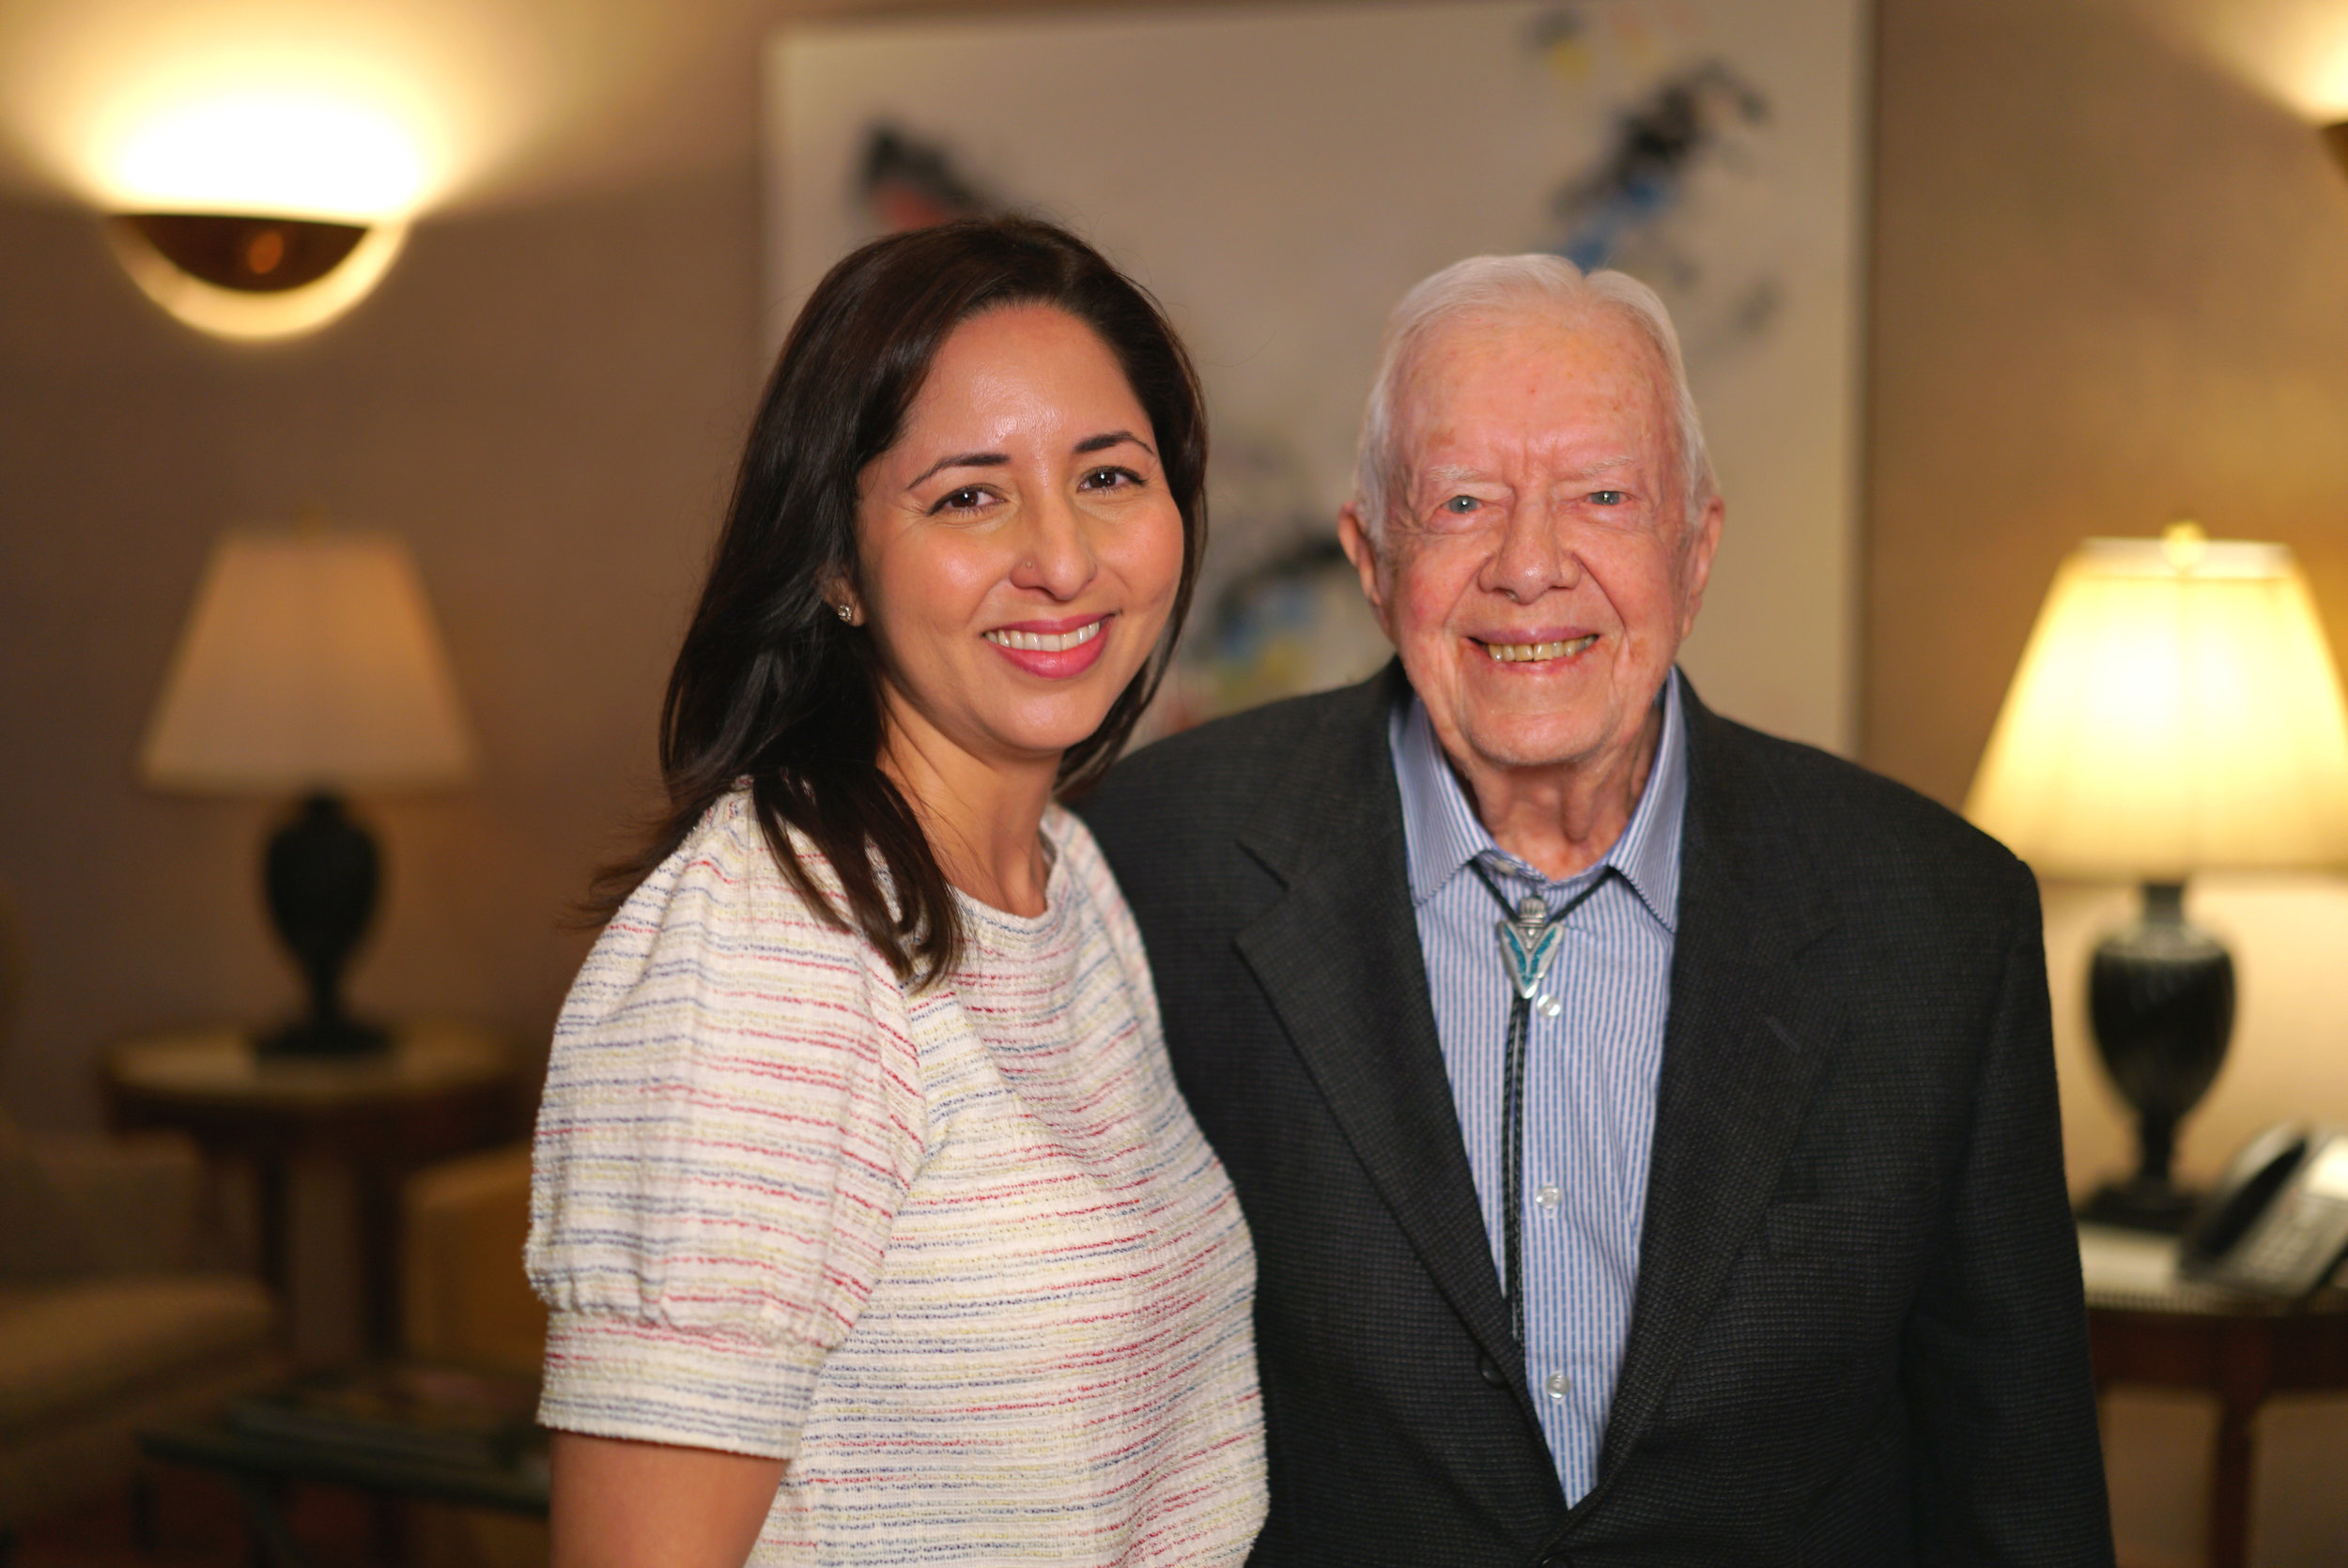 I once interviewed Pres. Jimmy Carter.